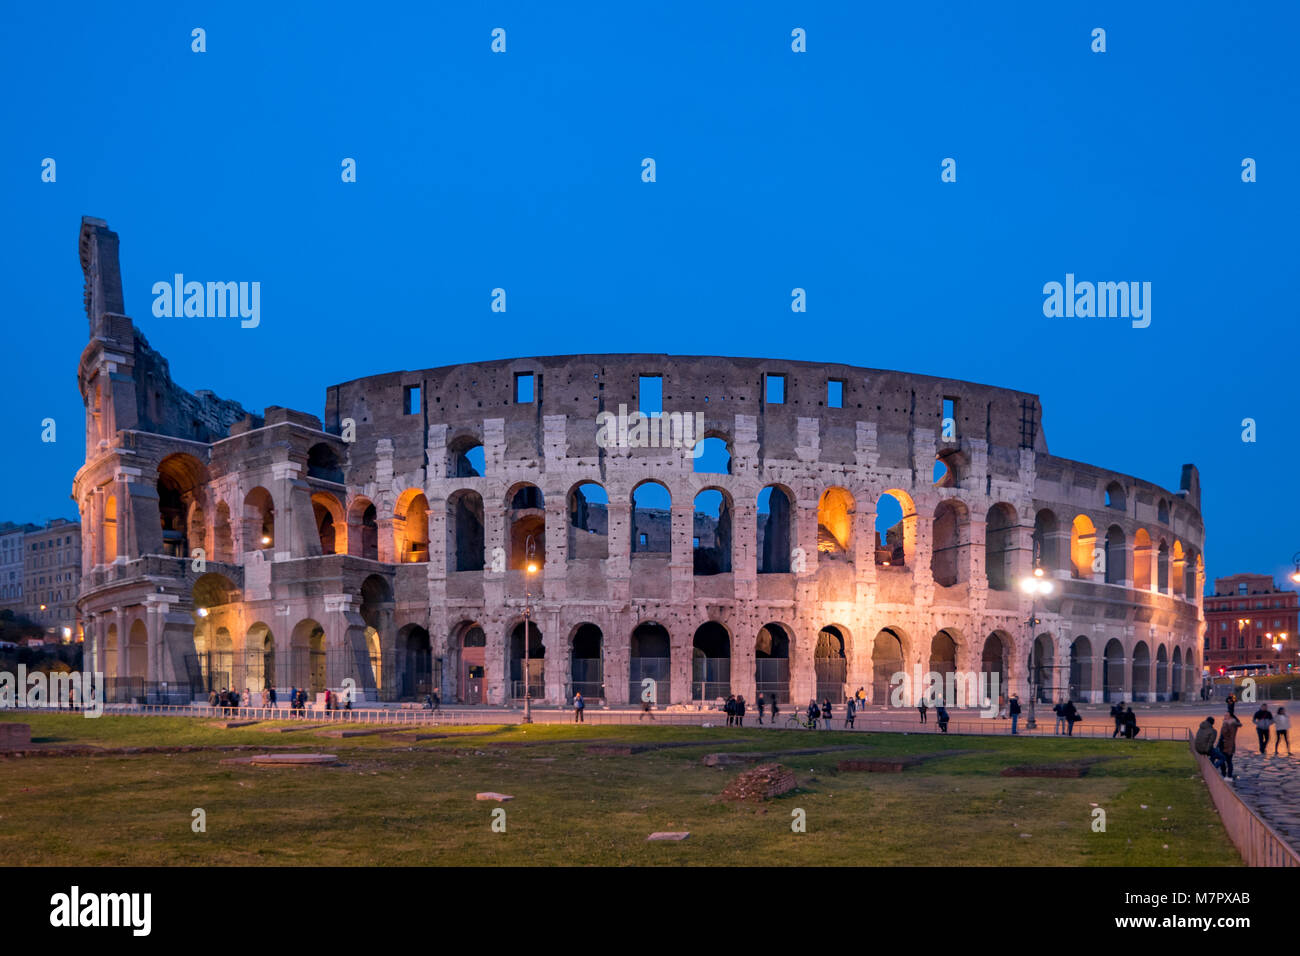 Night at the Colosseum in Rome, Italy - Stock Image